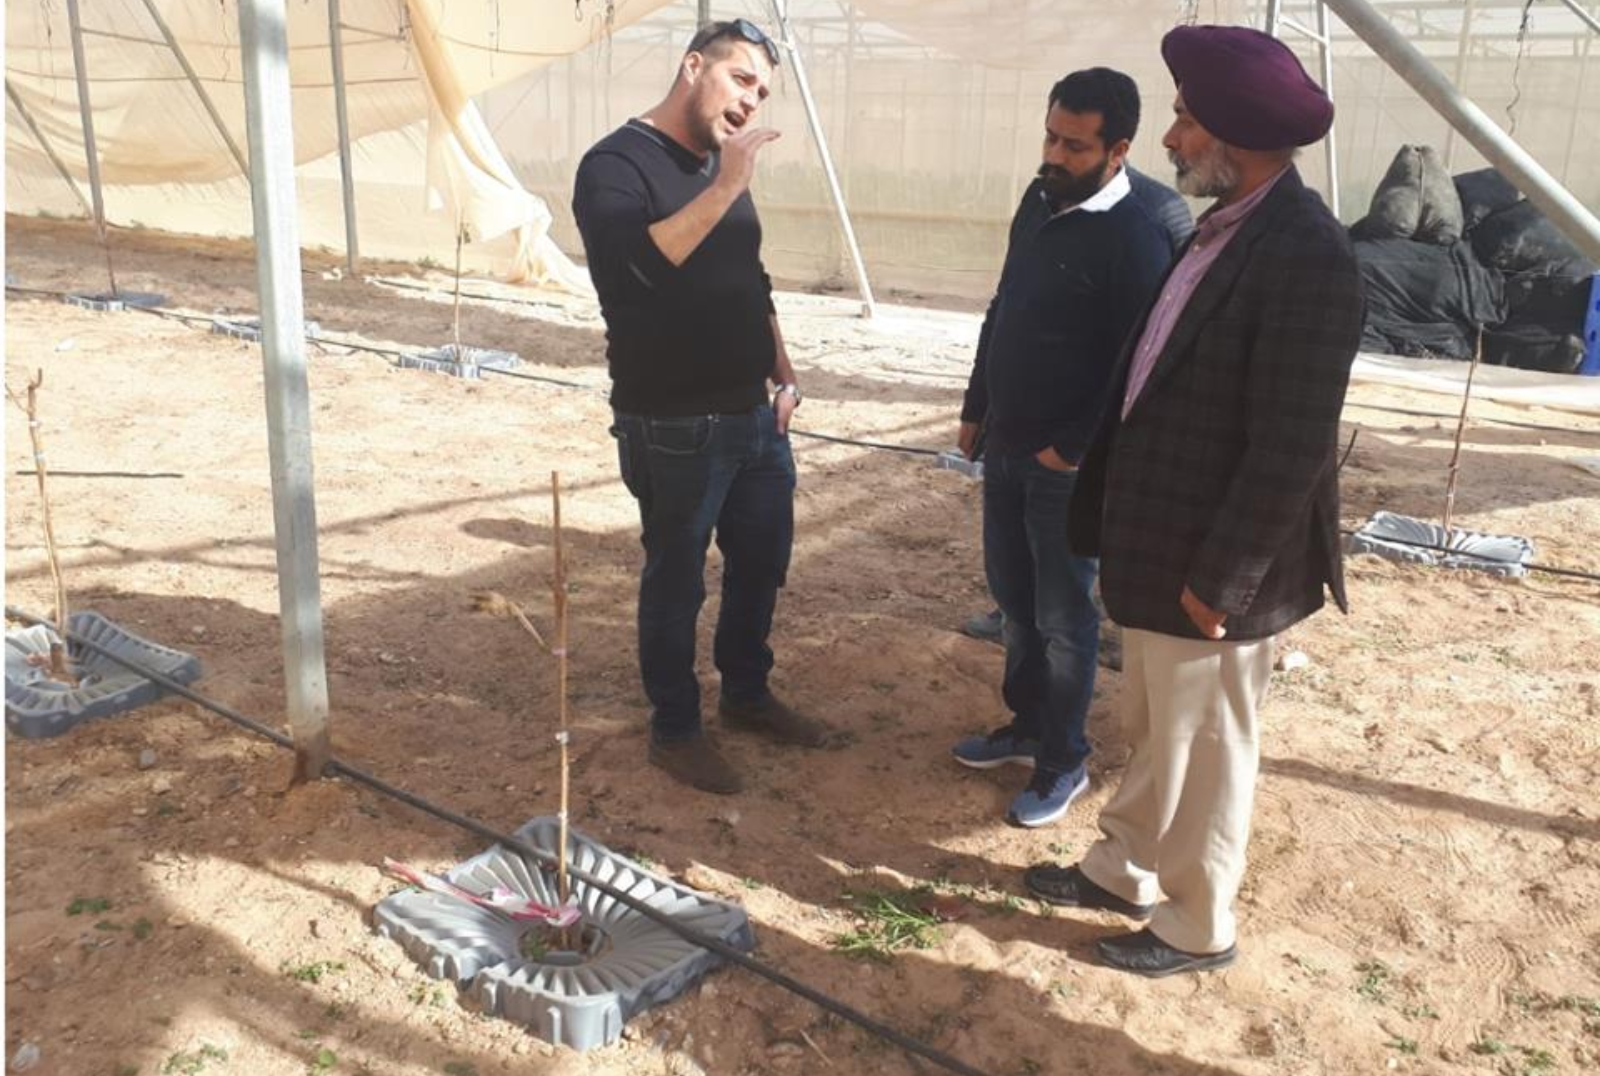 In January 2019, academicians from Punjab Agriculture University, India, came to see Tal-Ya in use at the Arava R&D Center in Israel. Photo: courtesy